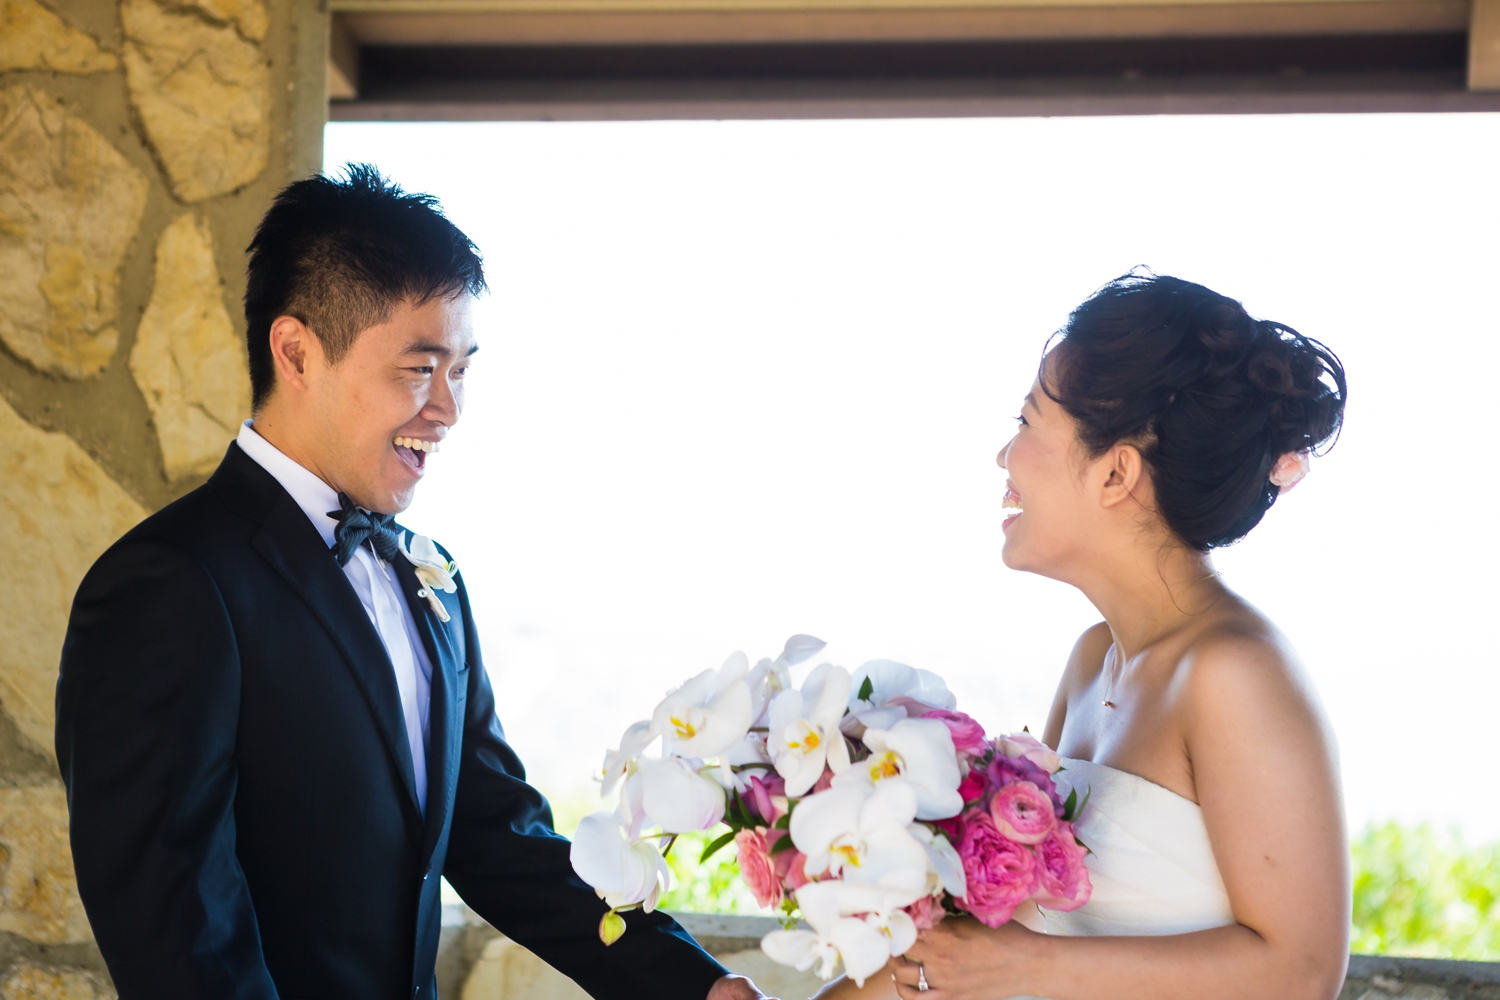 Bride and groom share first look at wayfarers chapel in Rancho Palos Verdes, CA